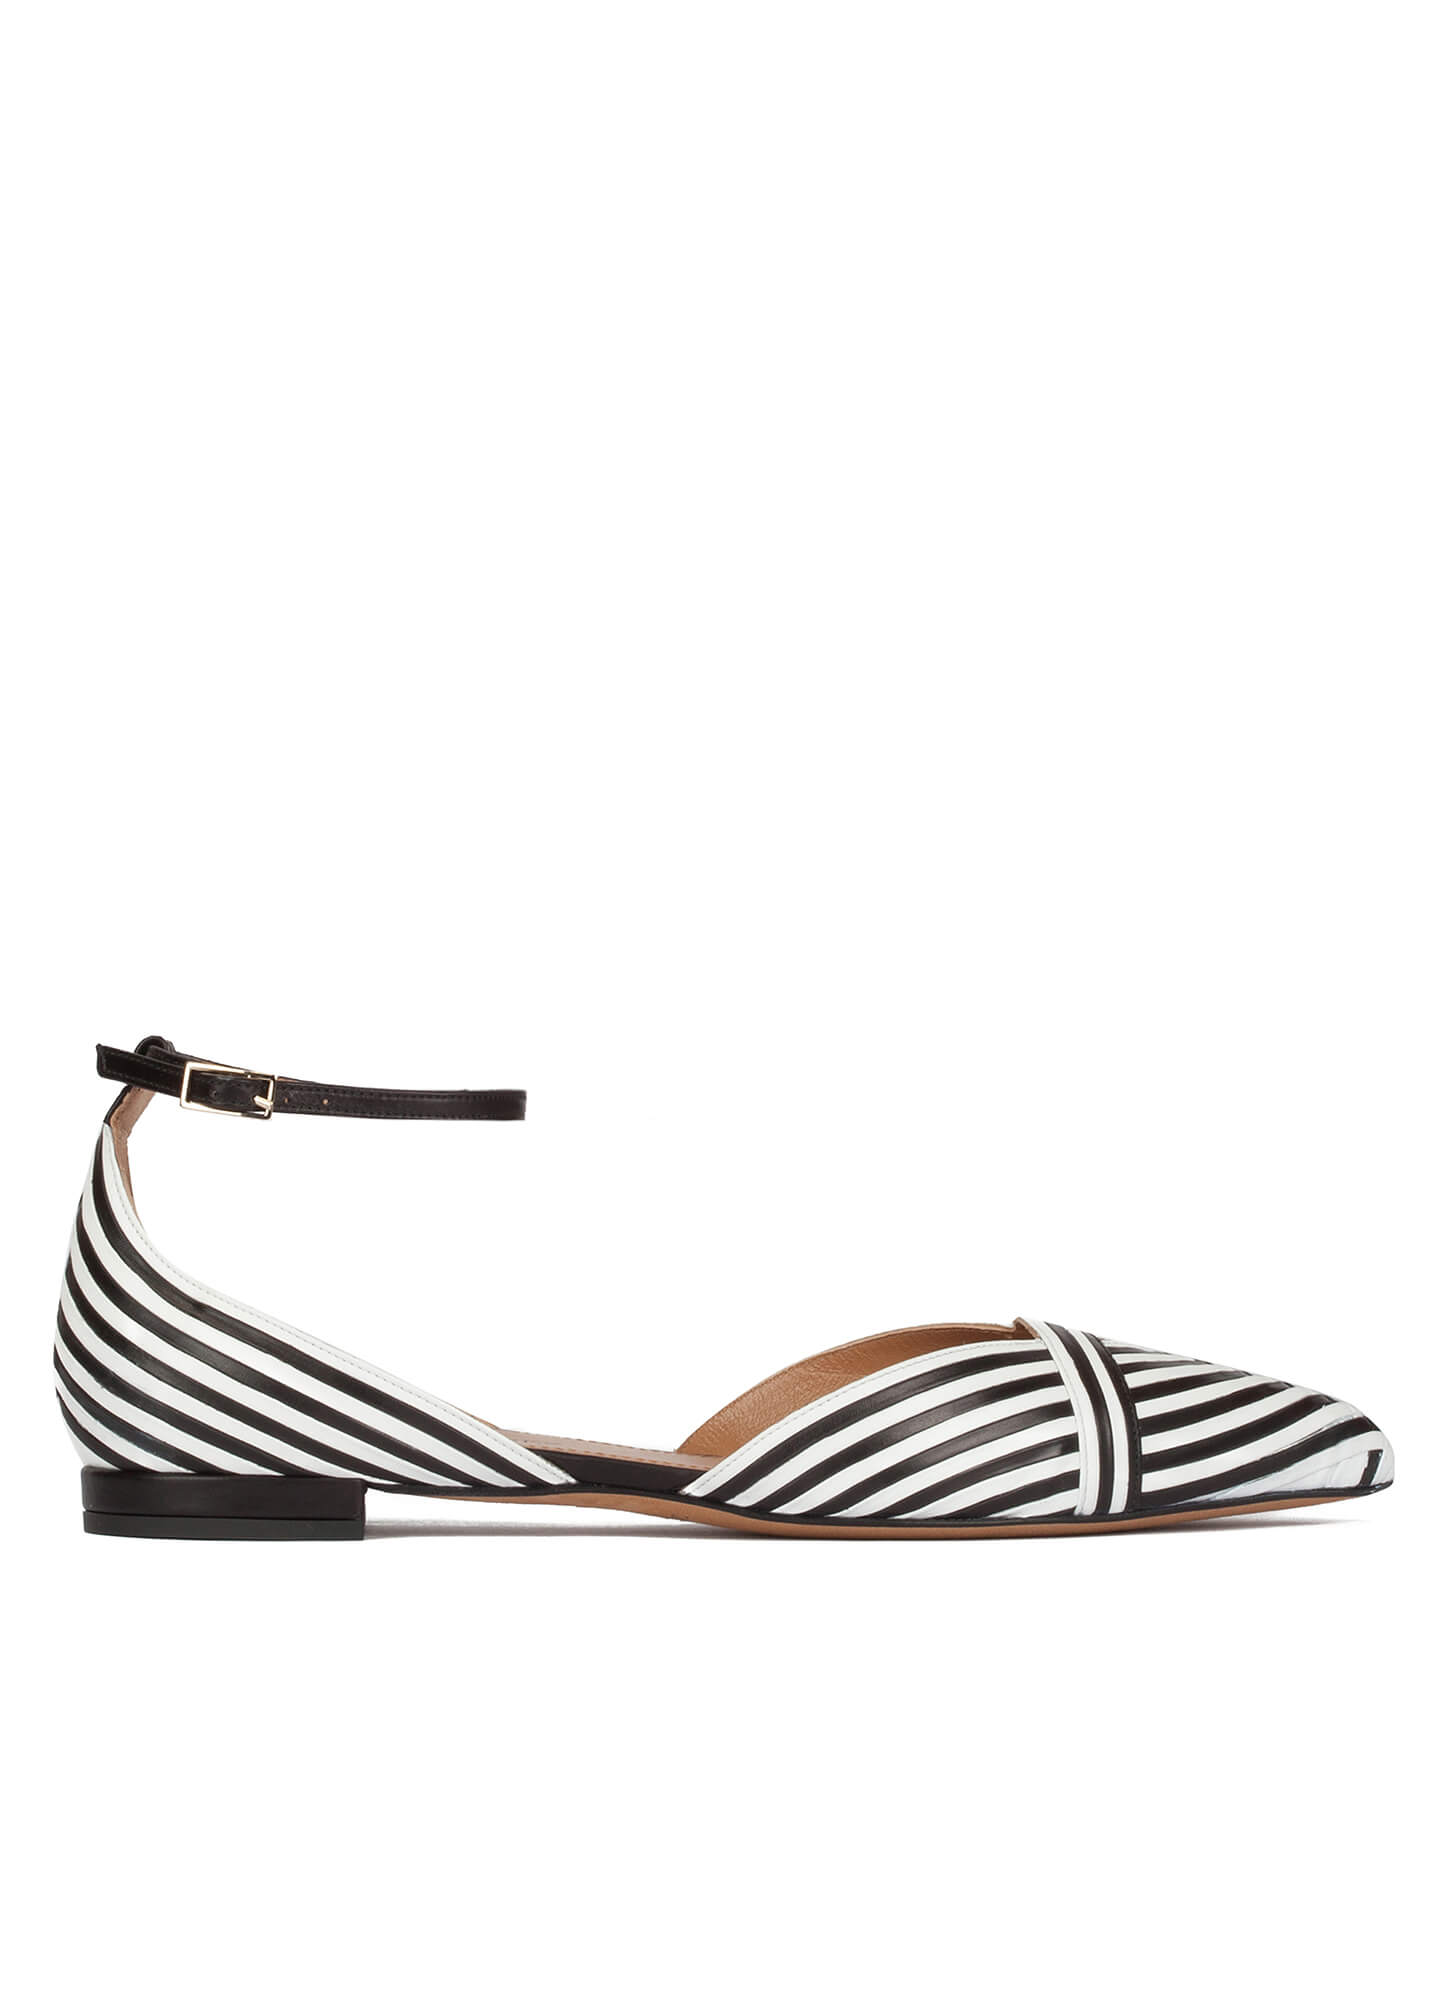 075a57f6436 Ankle strap point-toe flats in black and white leather. Opaline Pura López